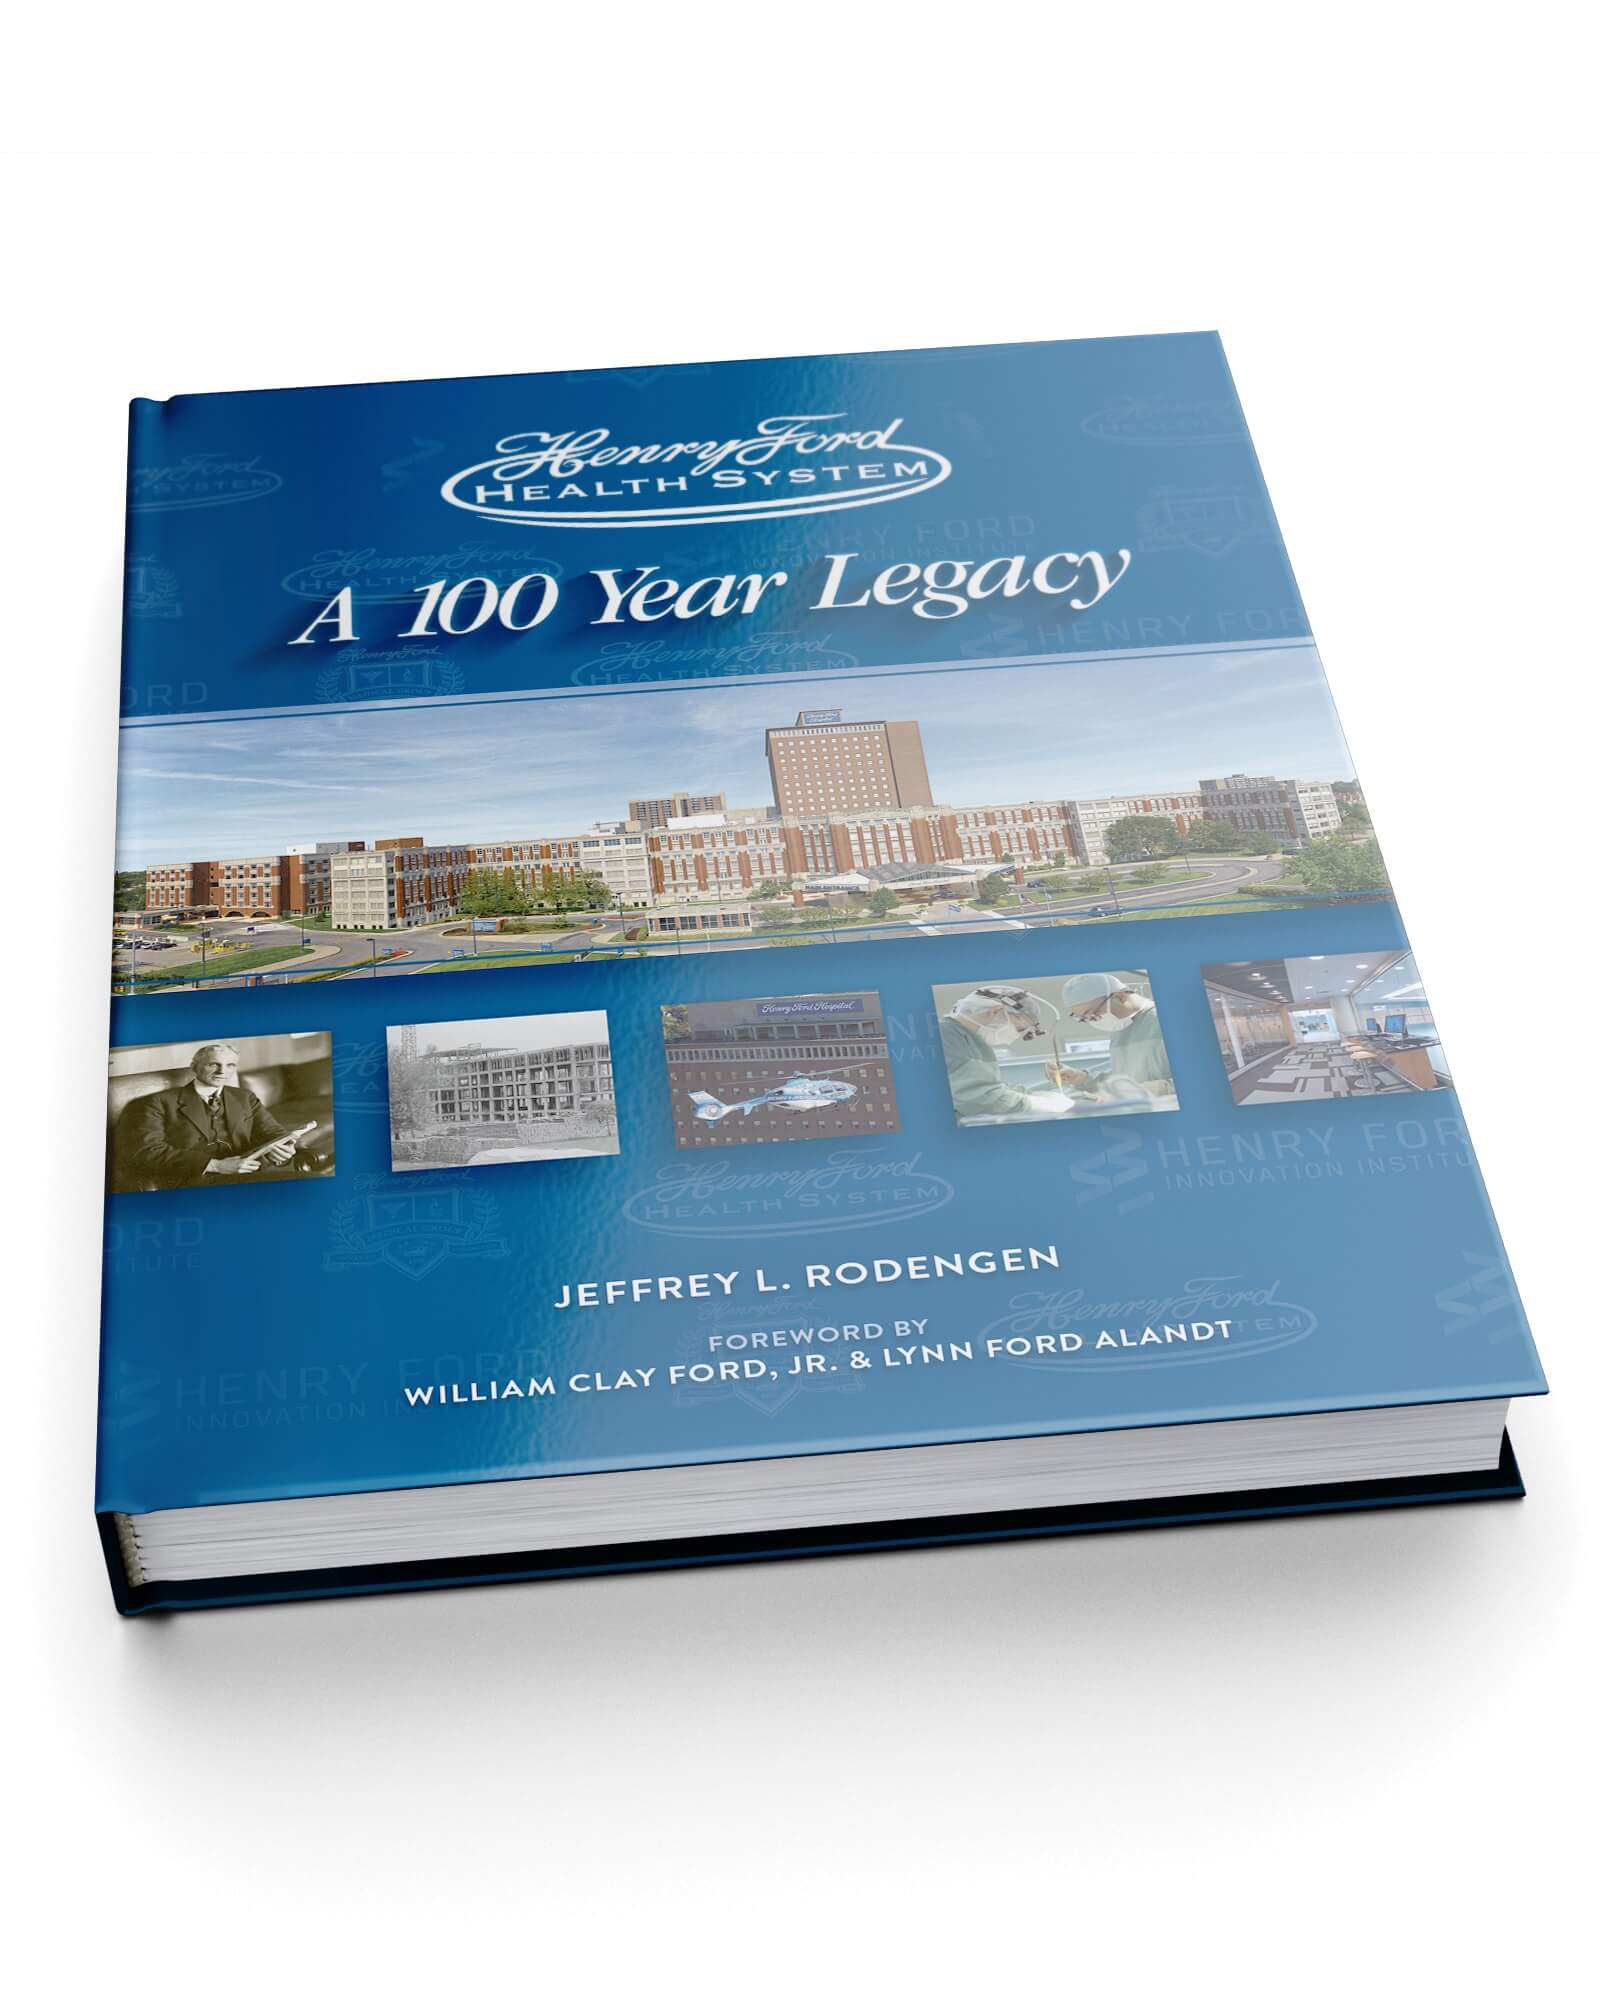 Henry Ford Health System - A 100 Year Legacy